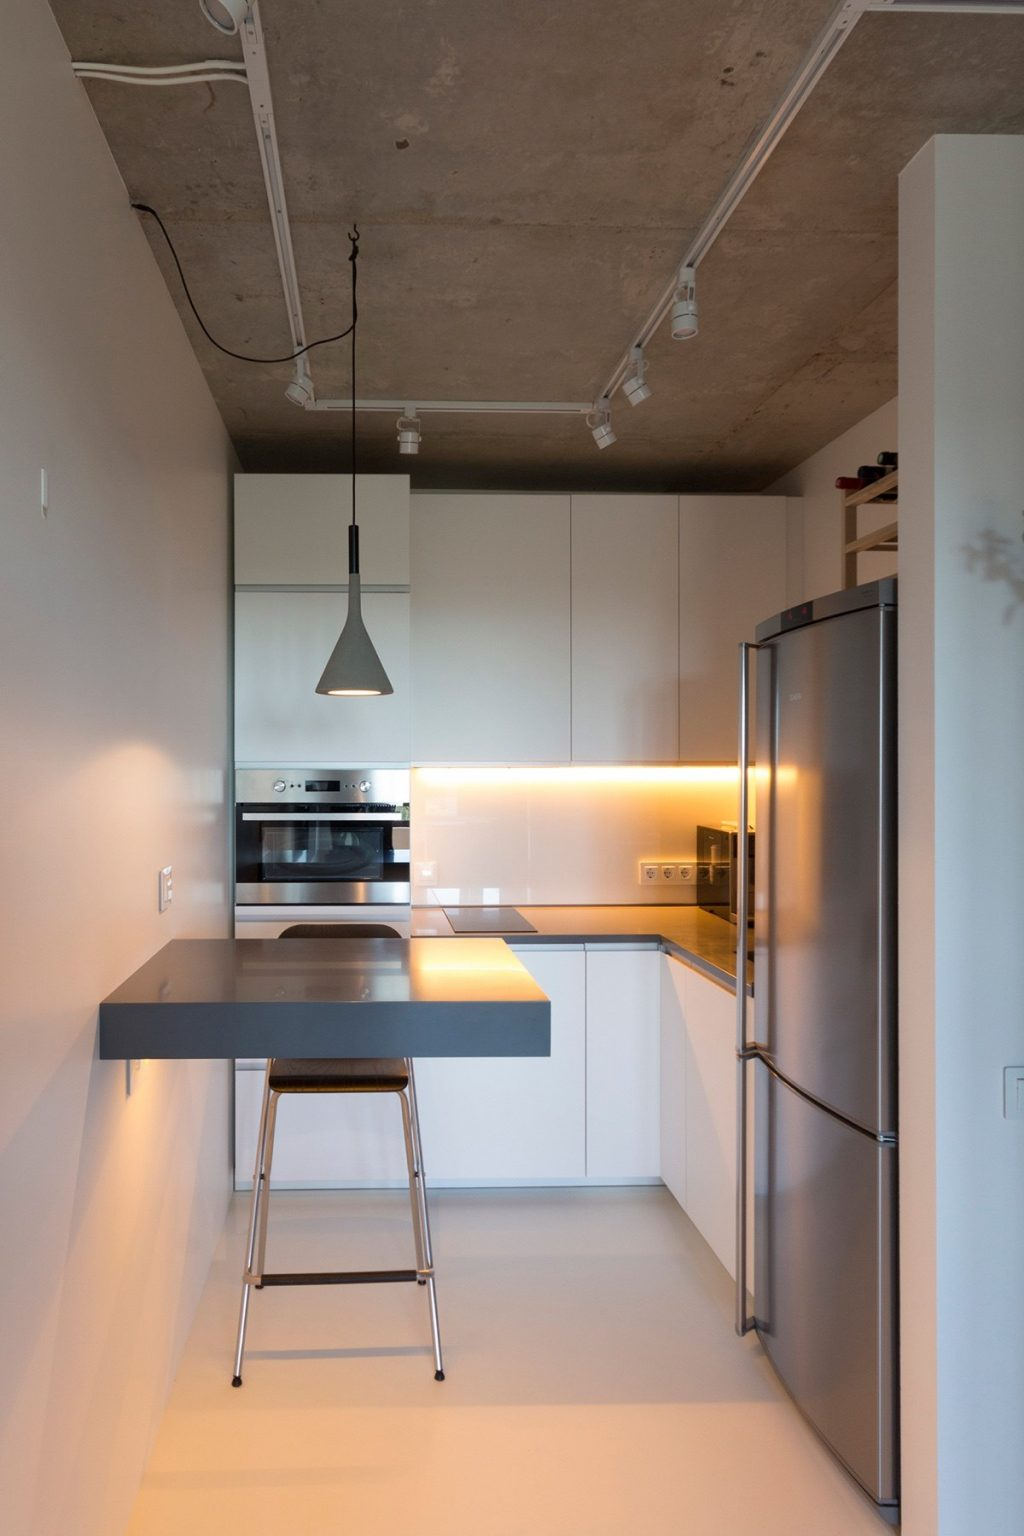 30.Minimalist-kitchen-white-walls-industrial-ceiling-grey-hanging-light-and-ledge-table